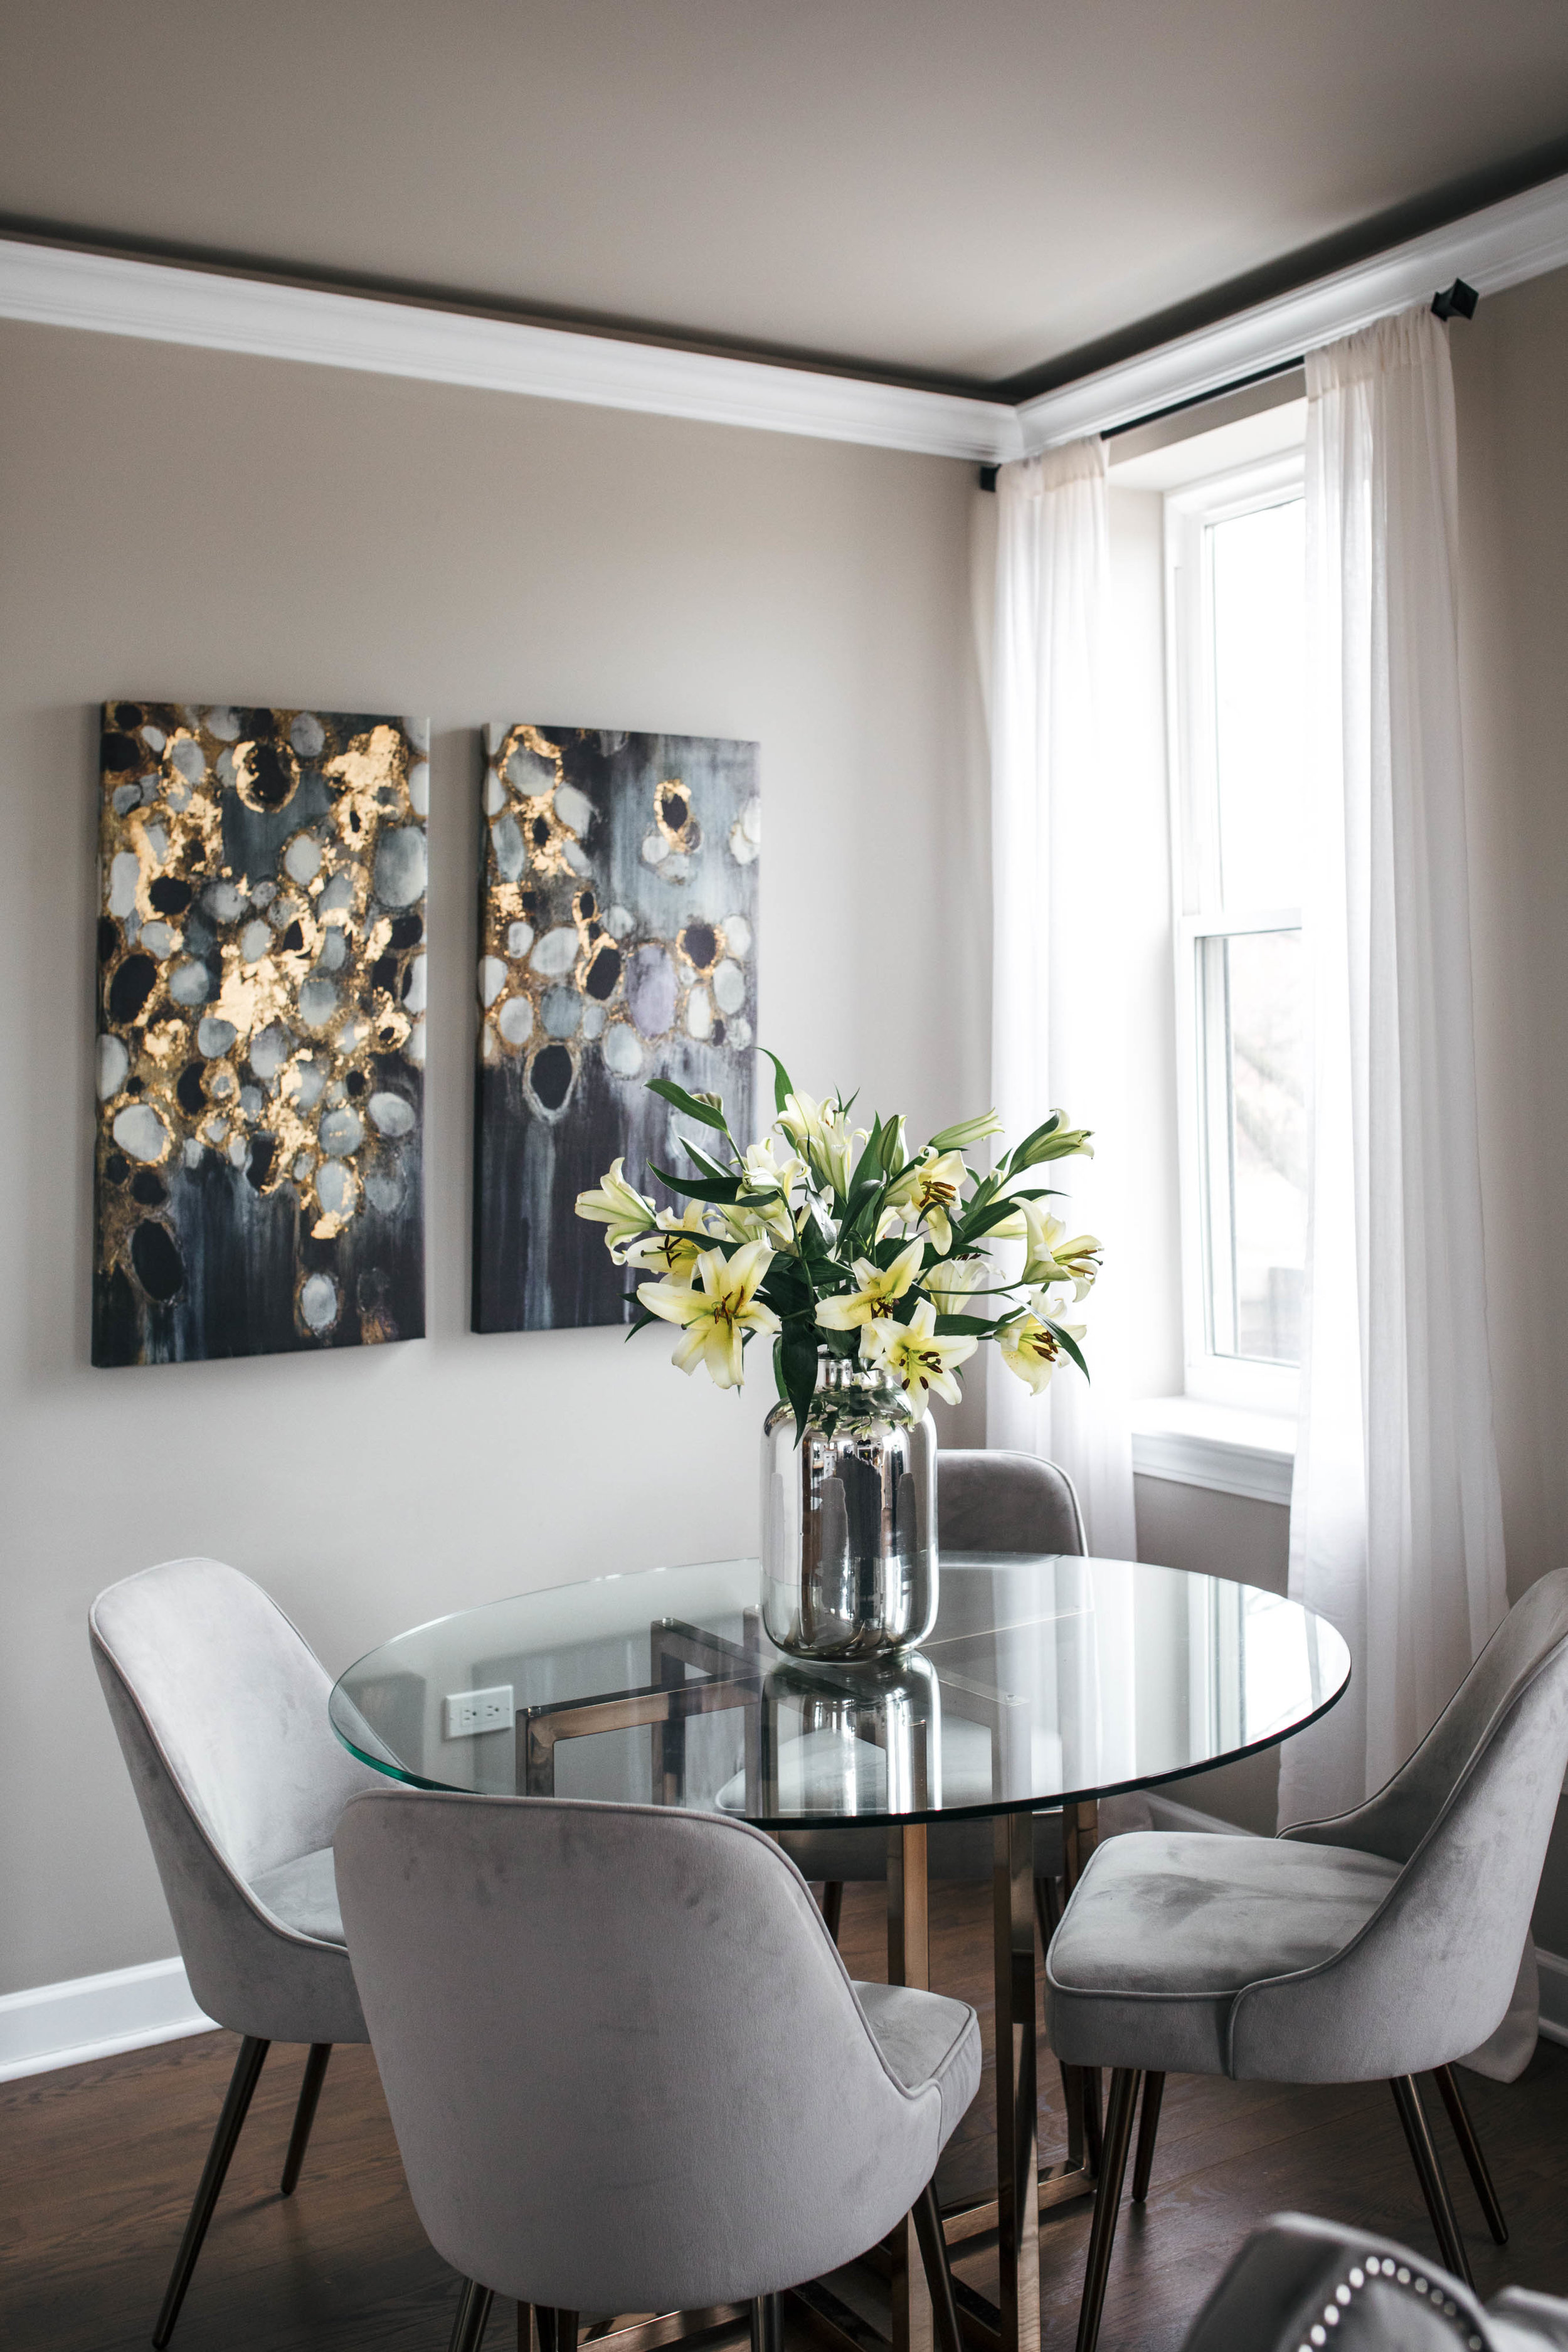 Chicago interior design photography by Sandy Noto